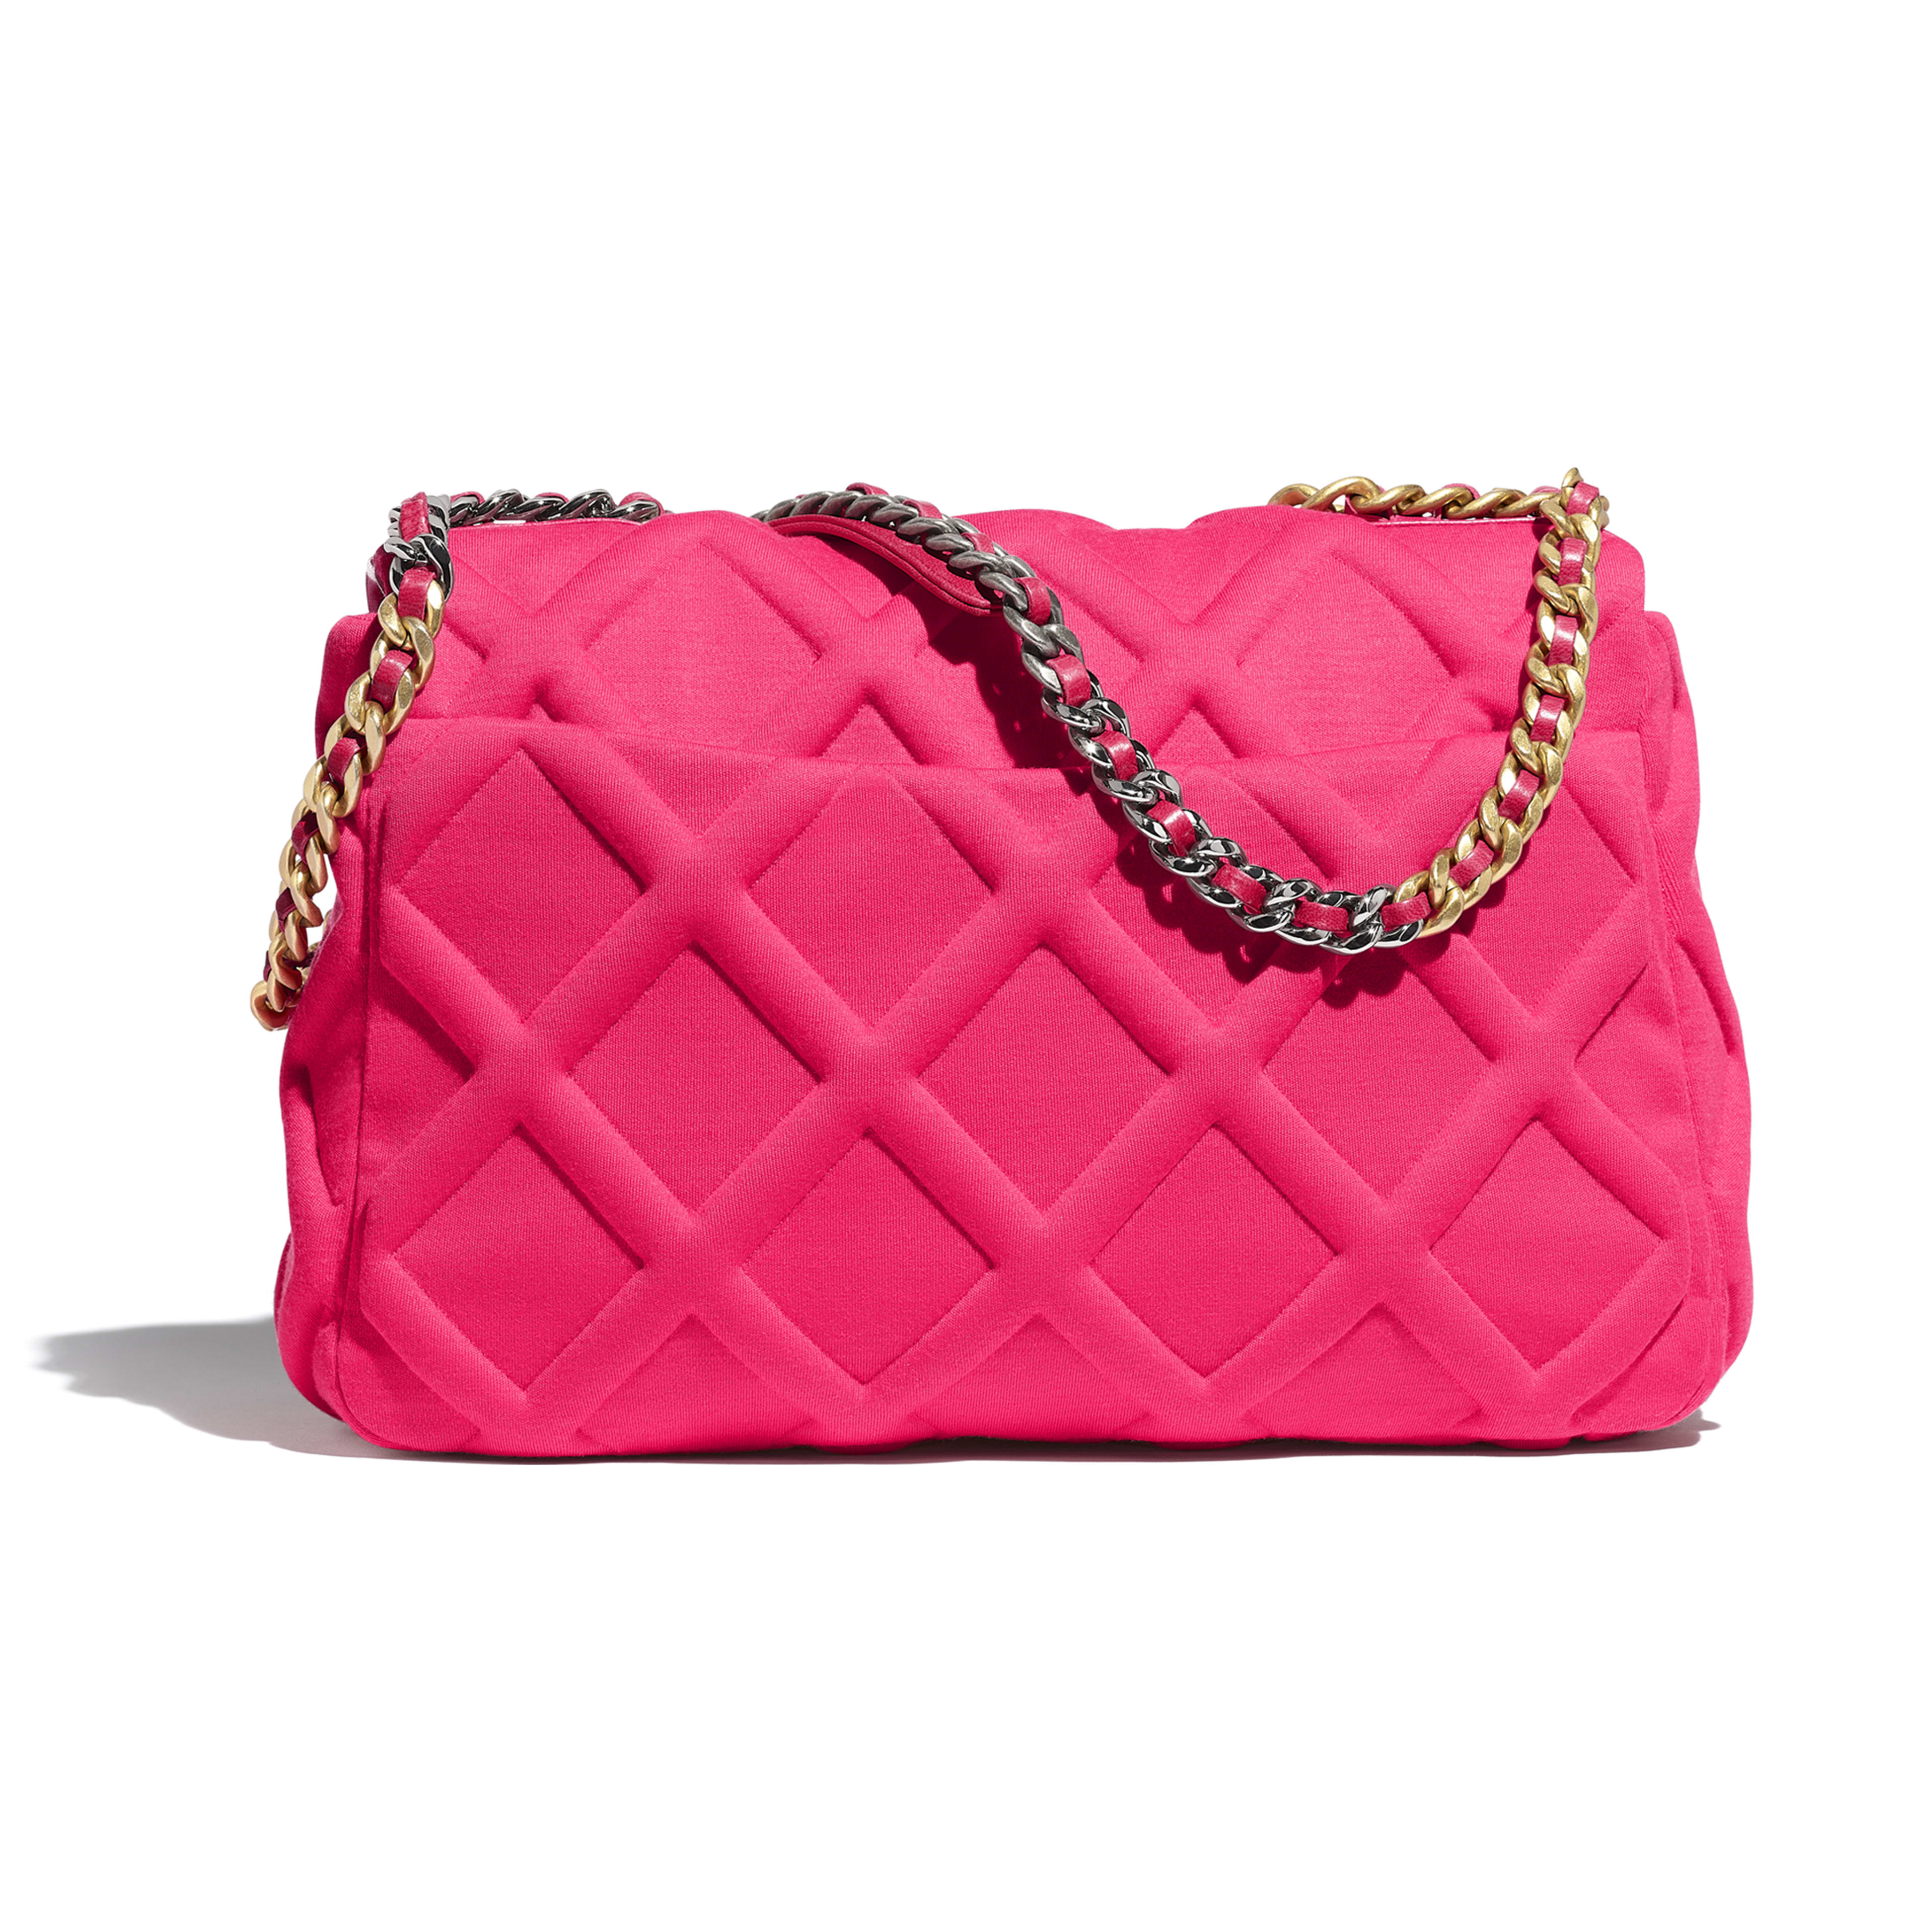 CHANEL 19 Maxi Flap Bag - Pink - Jersey, Gold-Tone, Silver-Tone & Ruthenium-Finish Metal - Alternative view - see full sized version